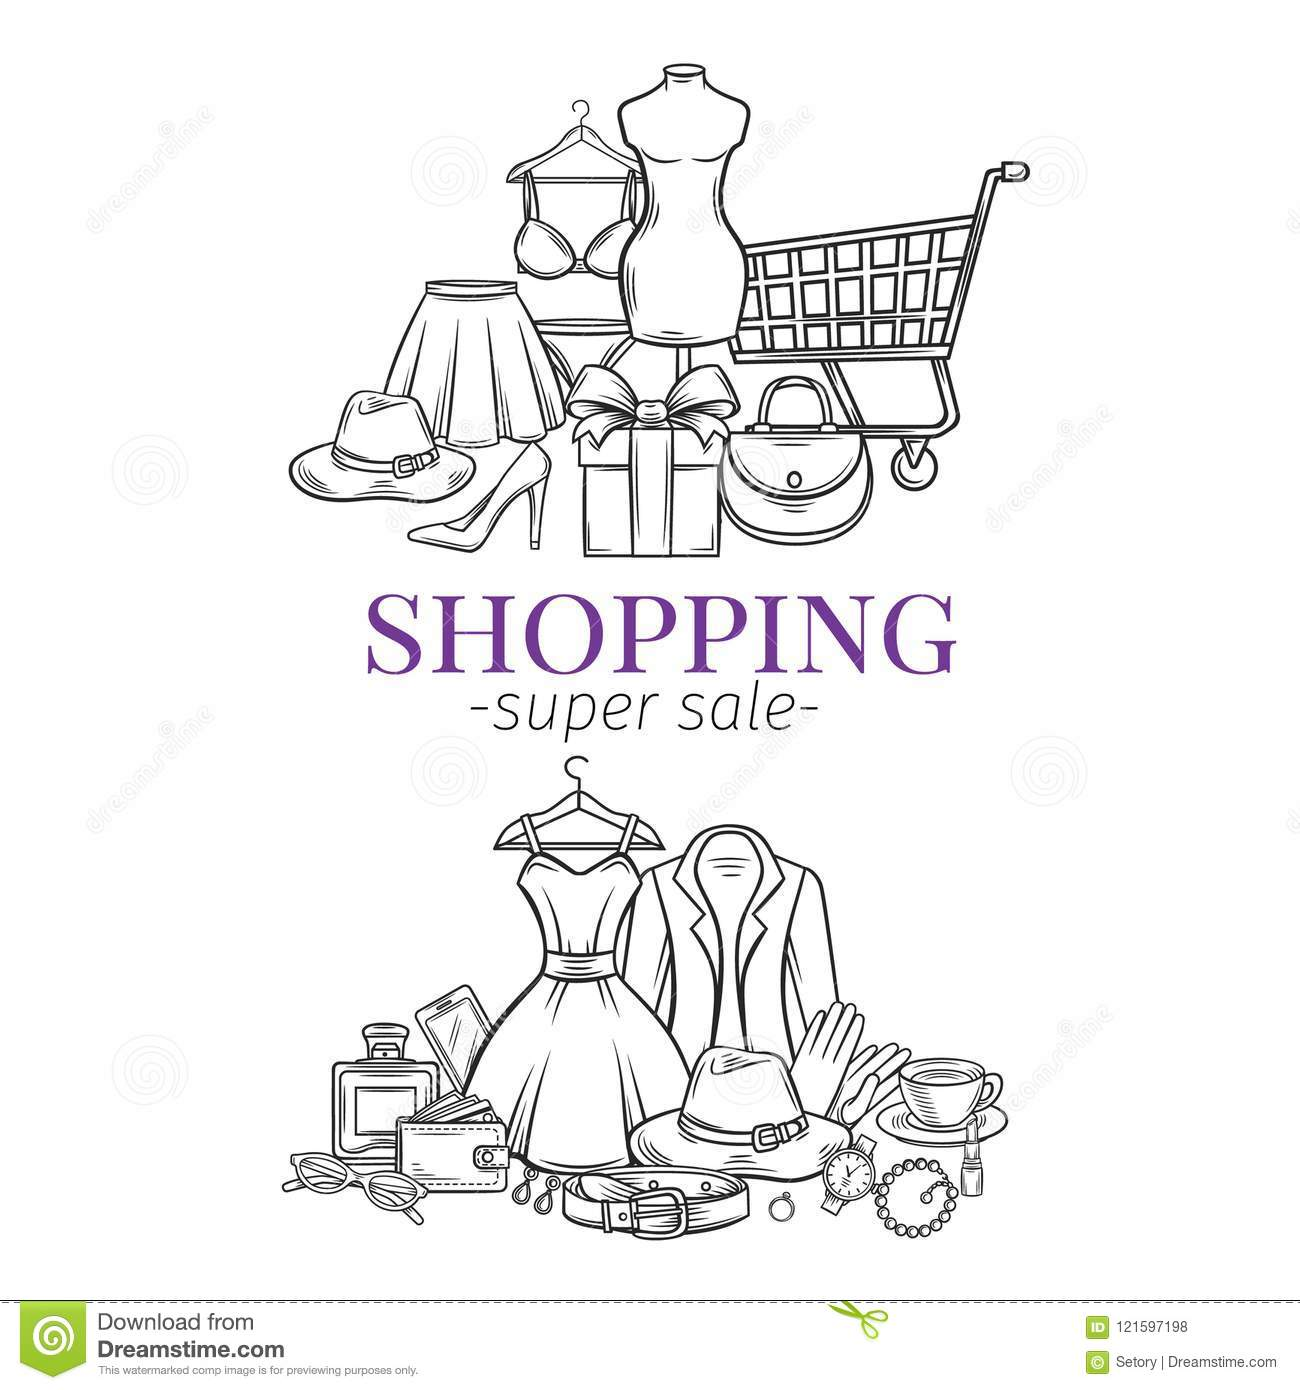 Fashion shopping banners stock illustration. Illustration of card ...